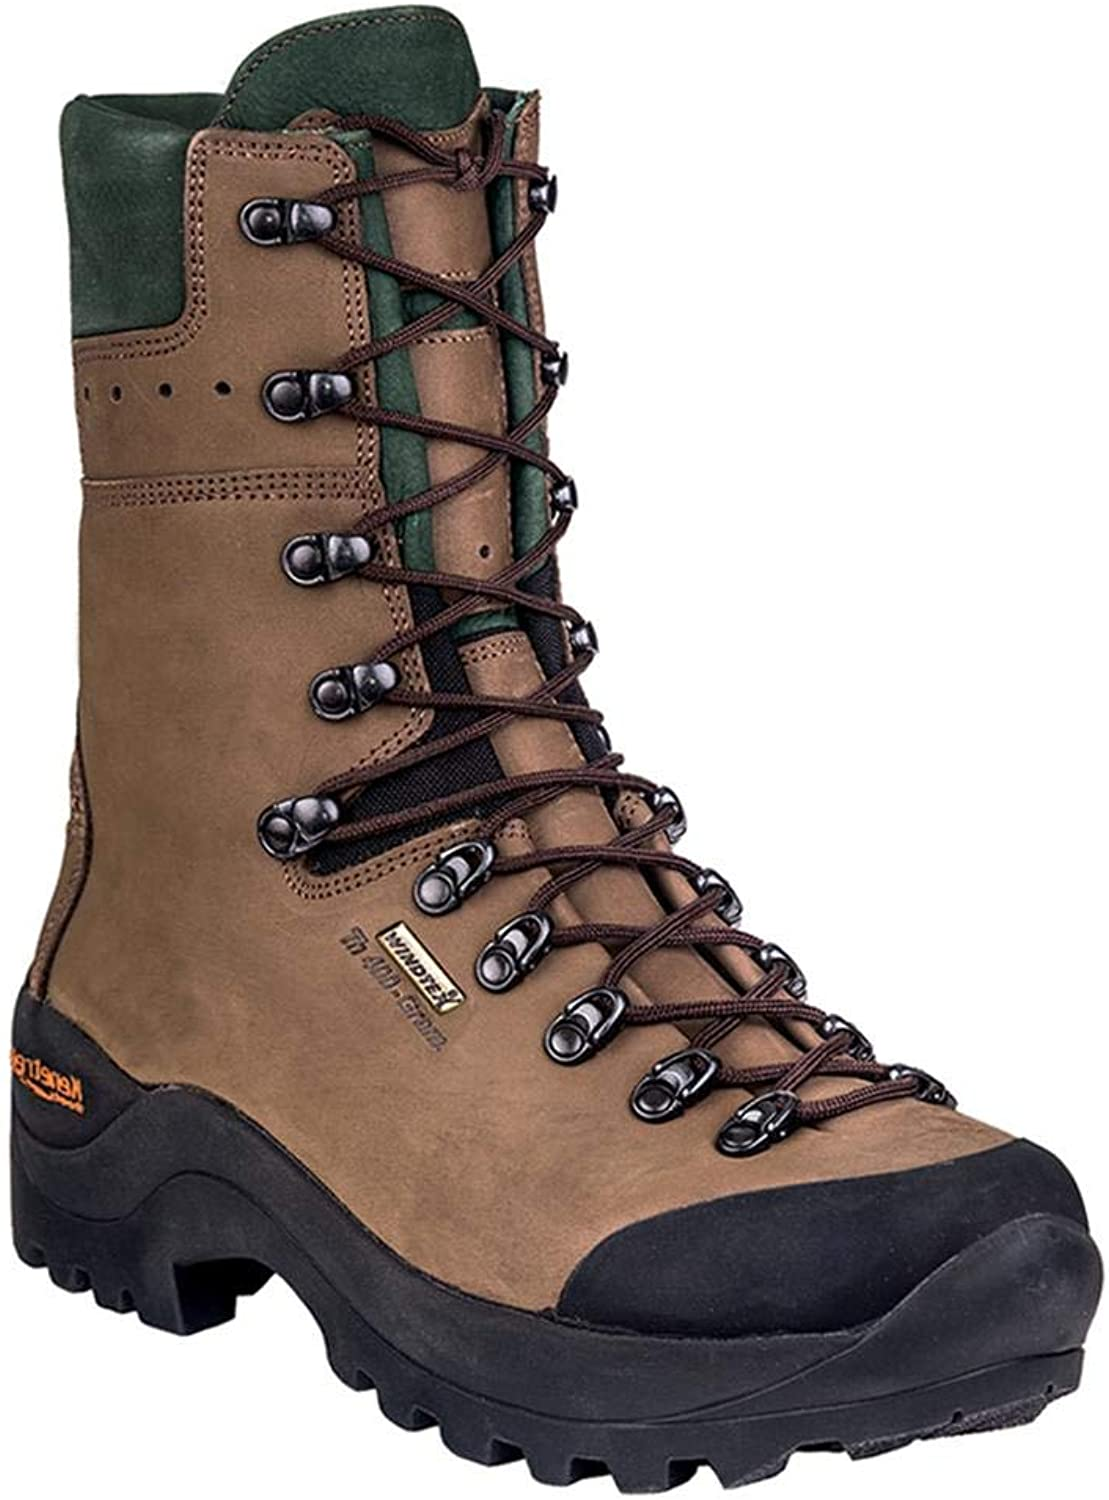 Kenetrek Mountain Guide 400 Insulated Hiking Boot